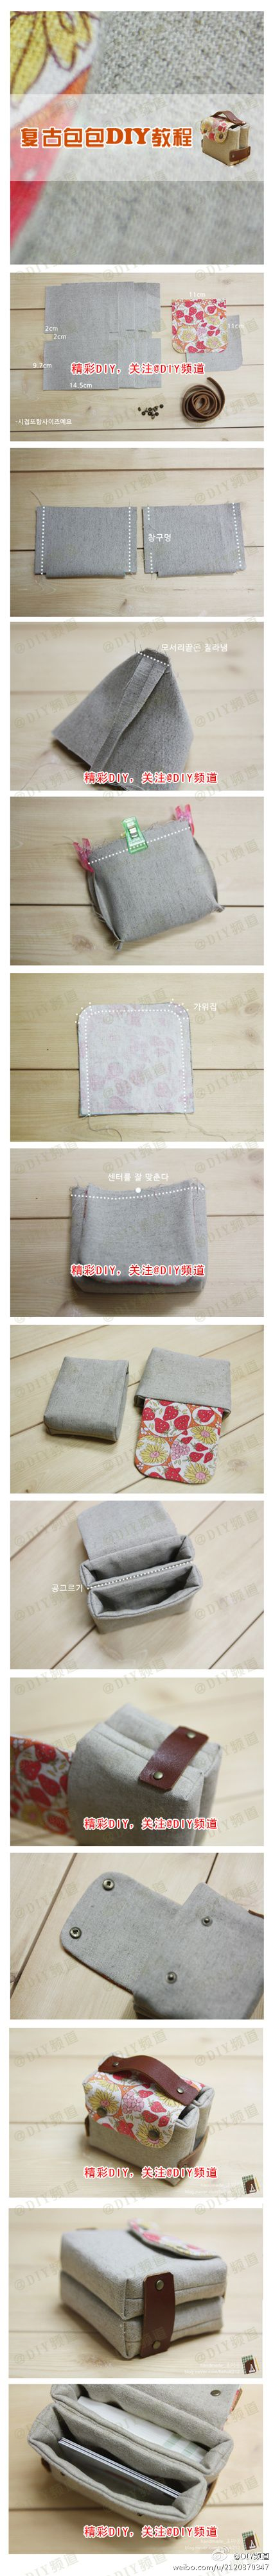 clever simple bag make